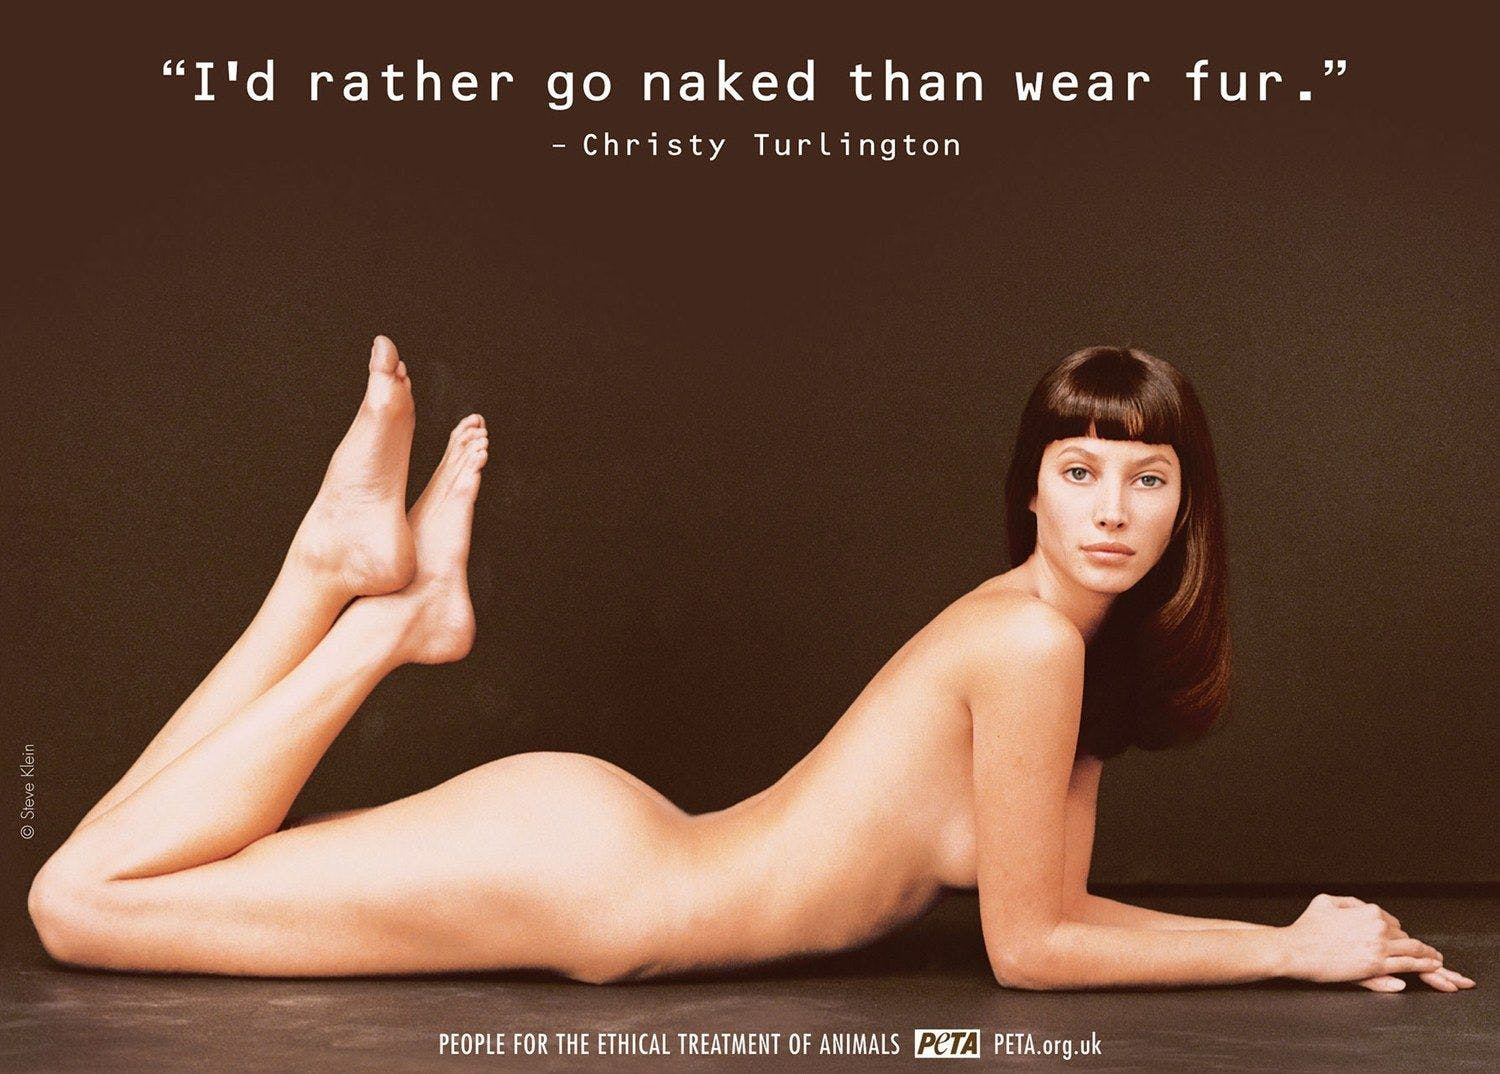 WHY FASHION INDUSTRY FELL OUT OF LOVE WITH NATURAL FUR